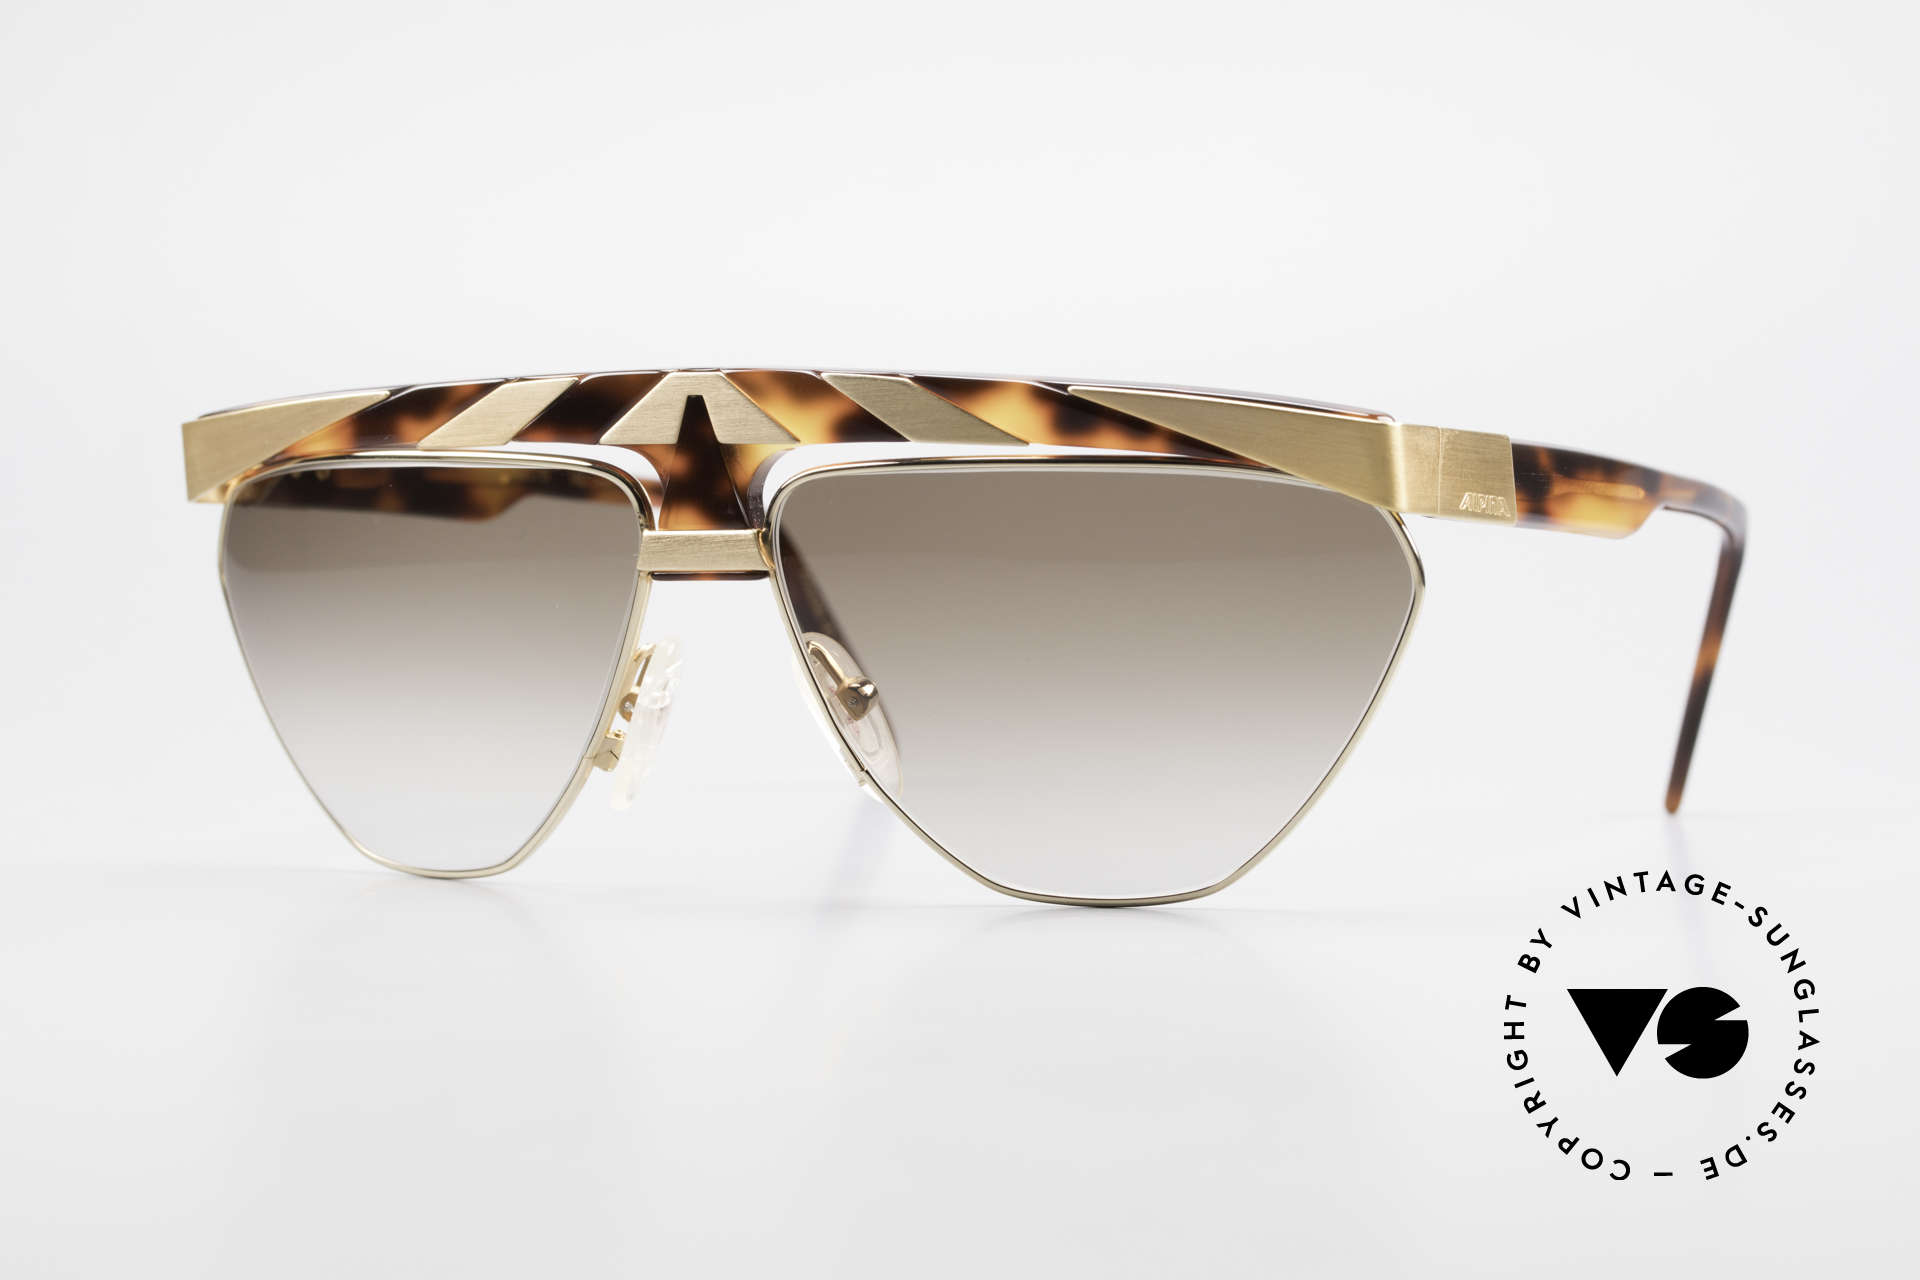 Alpina G84 80's Sunglasses Gold Plated, vintage model from the 'Genesis Project' by Alpina, Made for Men and Women